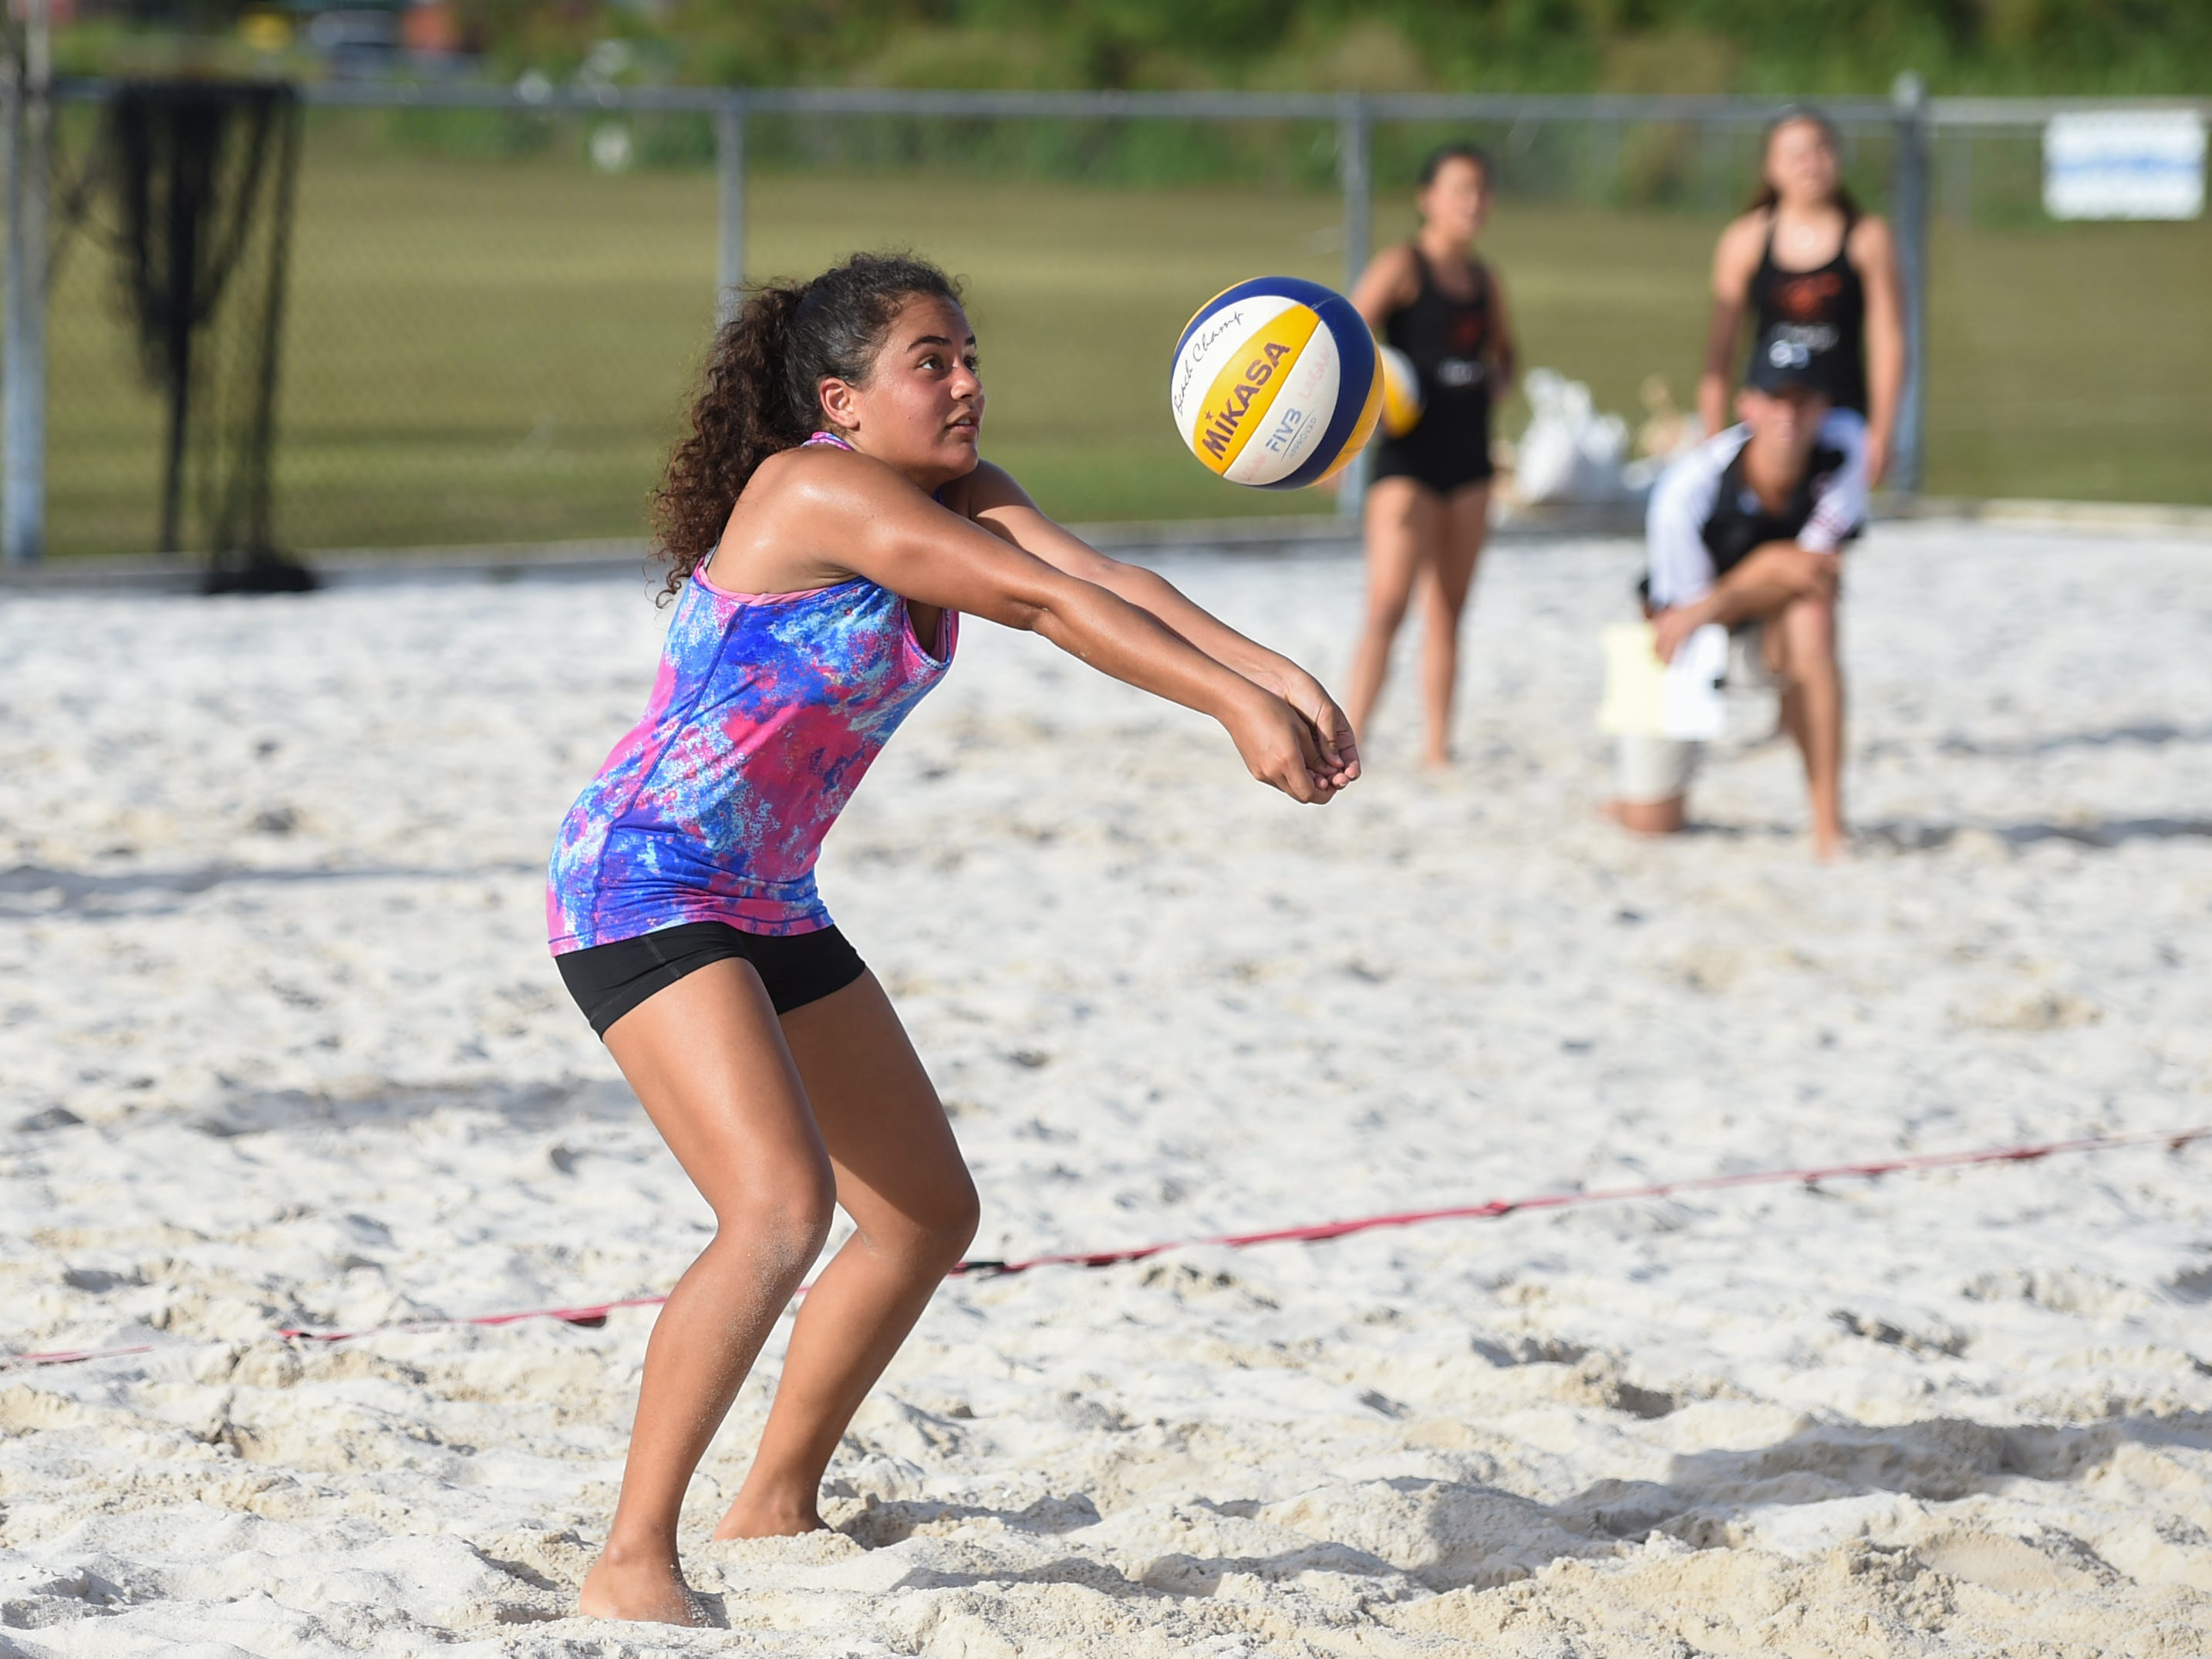 Hana Fernandez of the St. John's Knights White team, competes during the IIAAG Beach Volleyball third place game at the Guam Football Association National Training Center in Dededo, March 12, 2019.